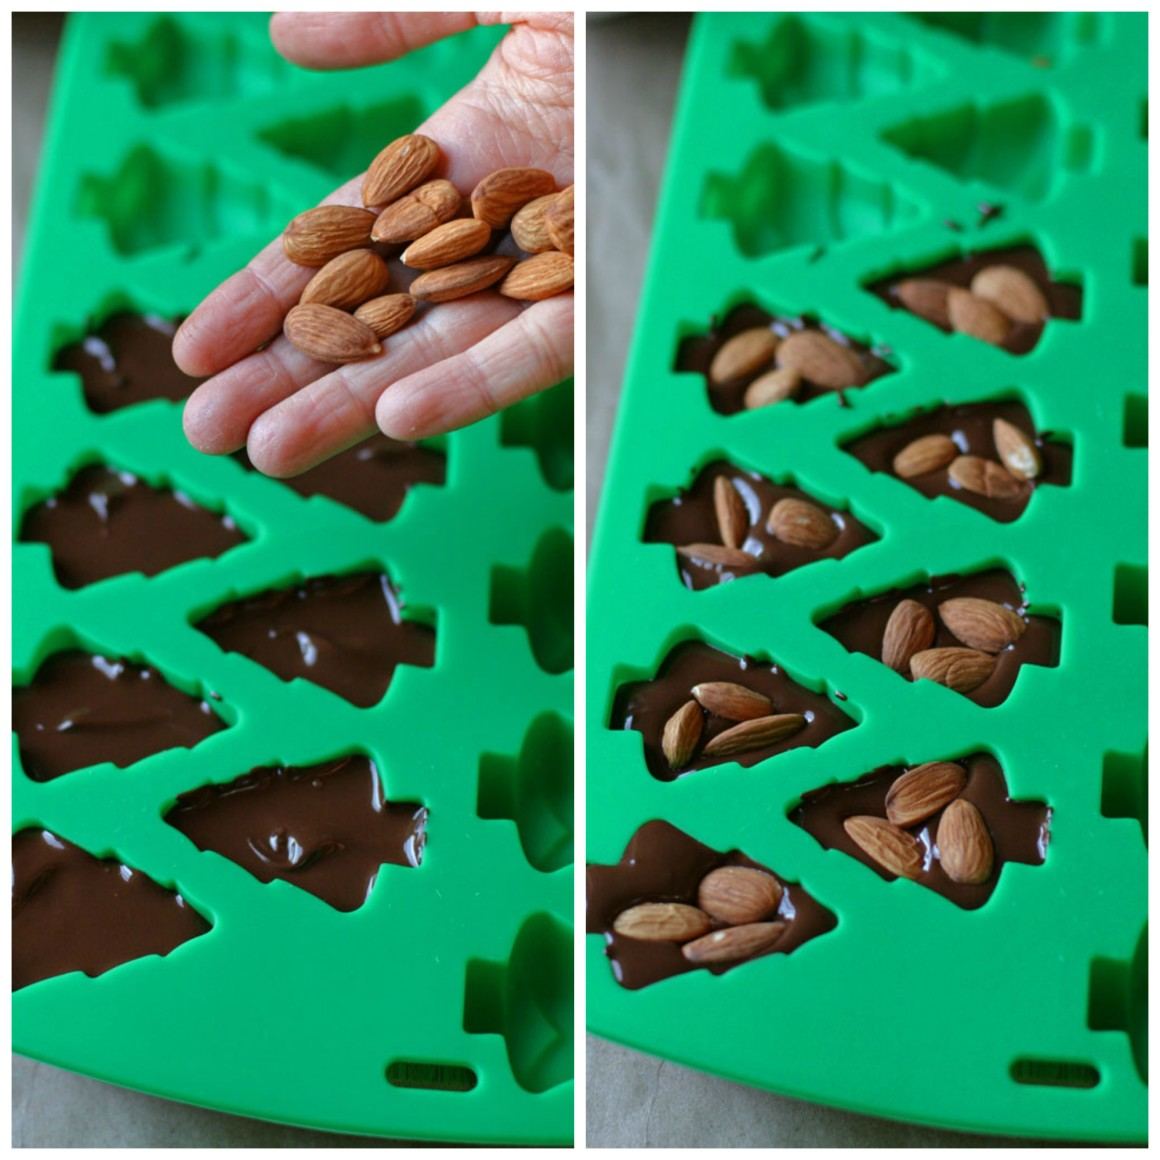 Who doesn't love edible gifts? Give these homemade chocolate covered almonds as a handmade gift this year -- bonus if you put them in Christmas tree molds!